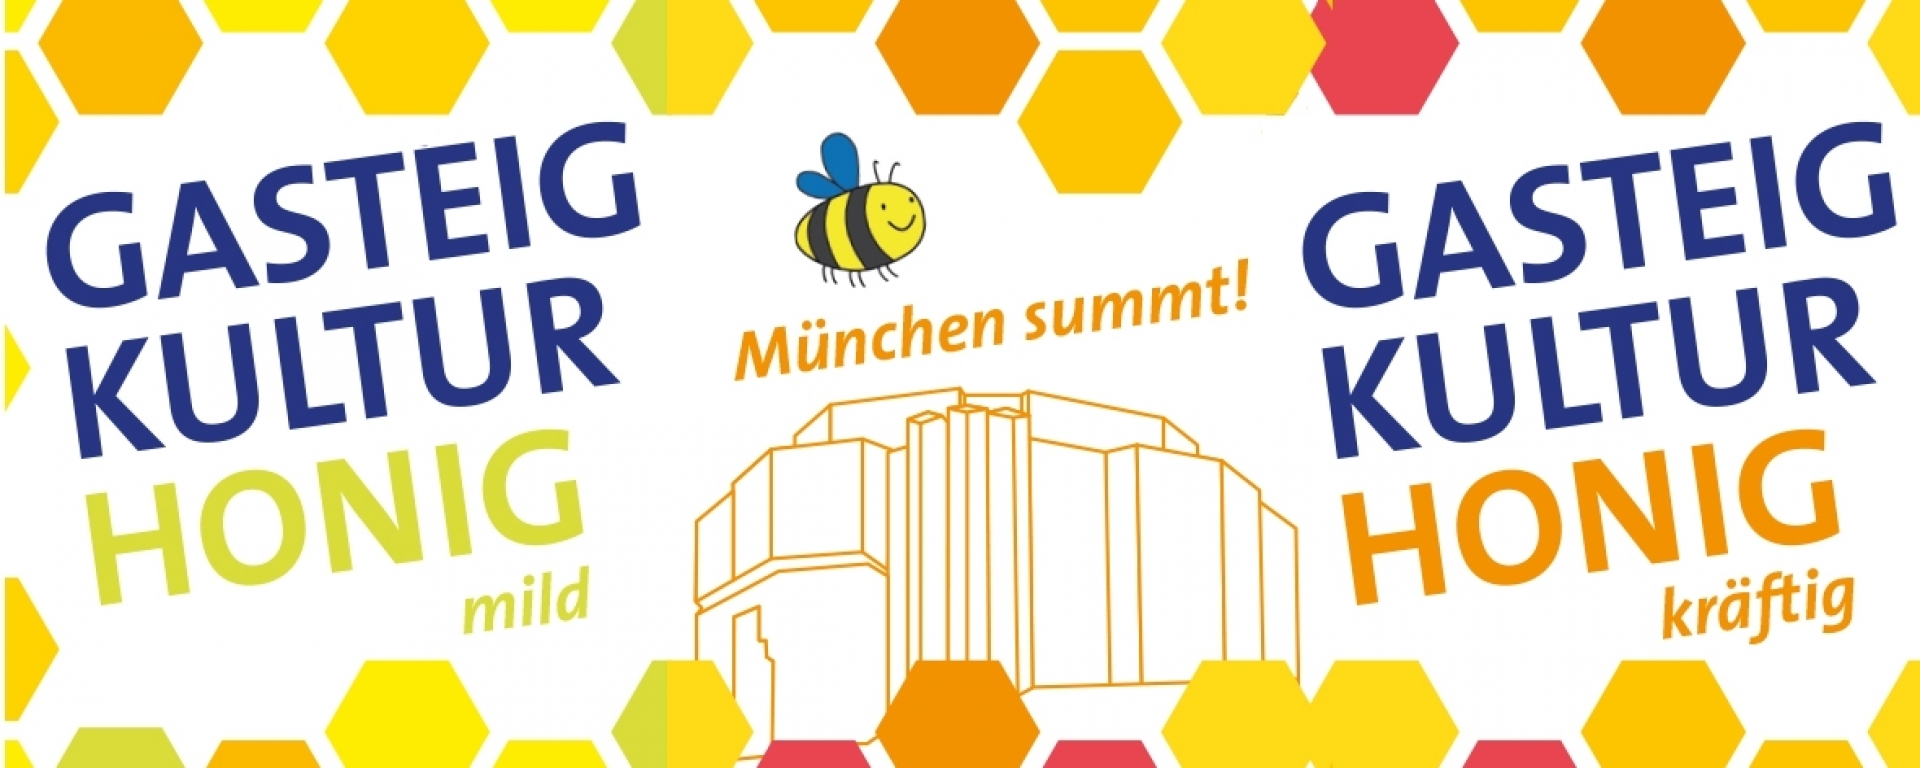 »Gasteig Culture Honey« Available to Buy from 19 April